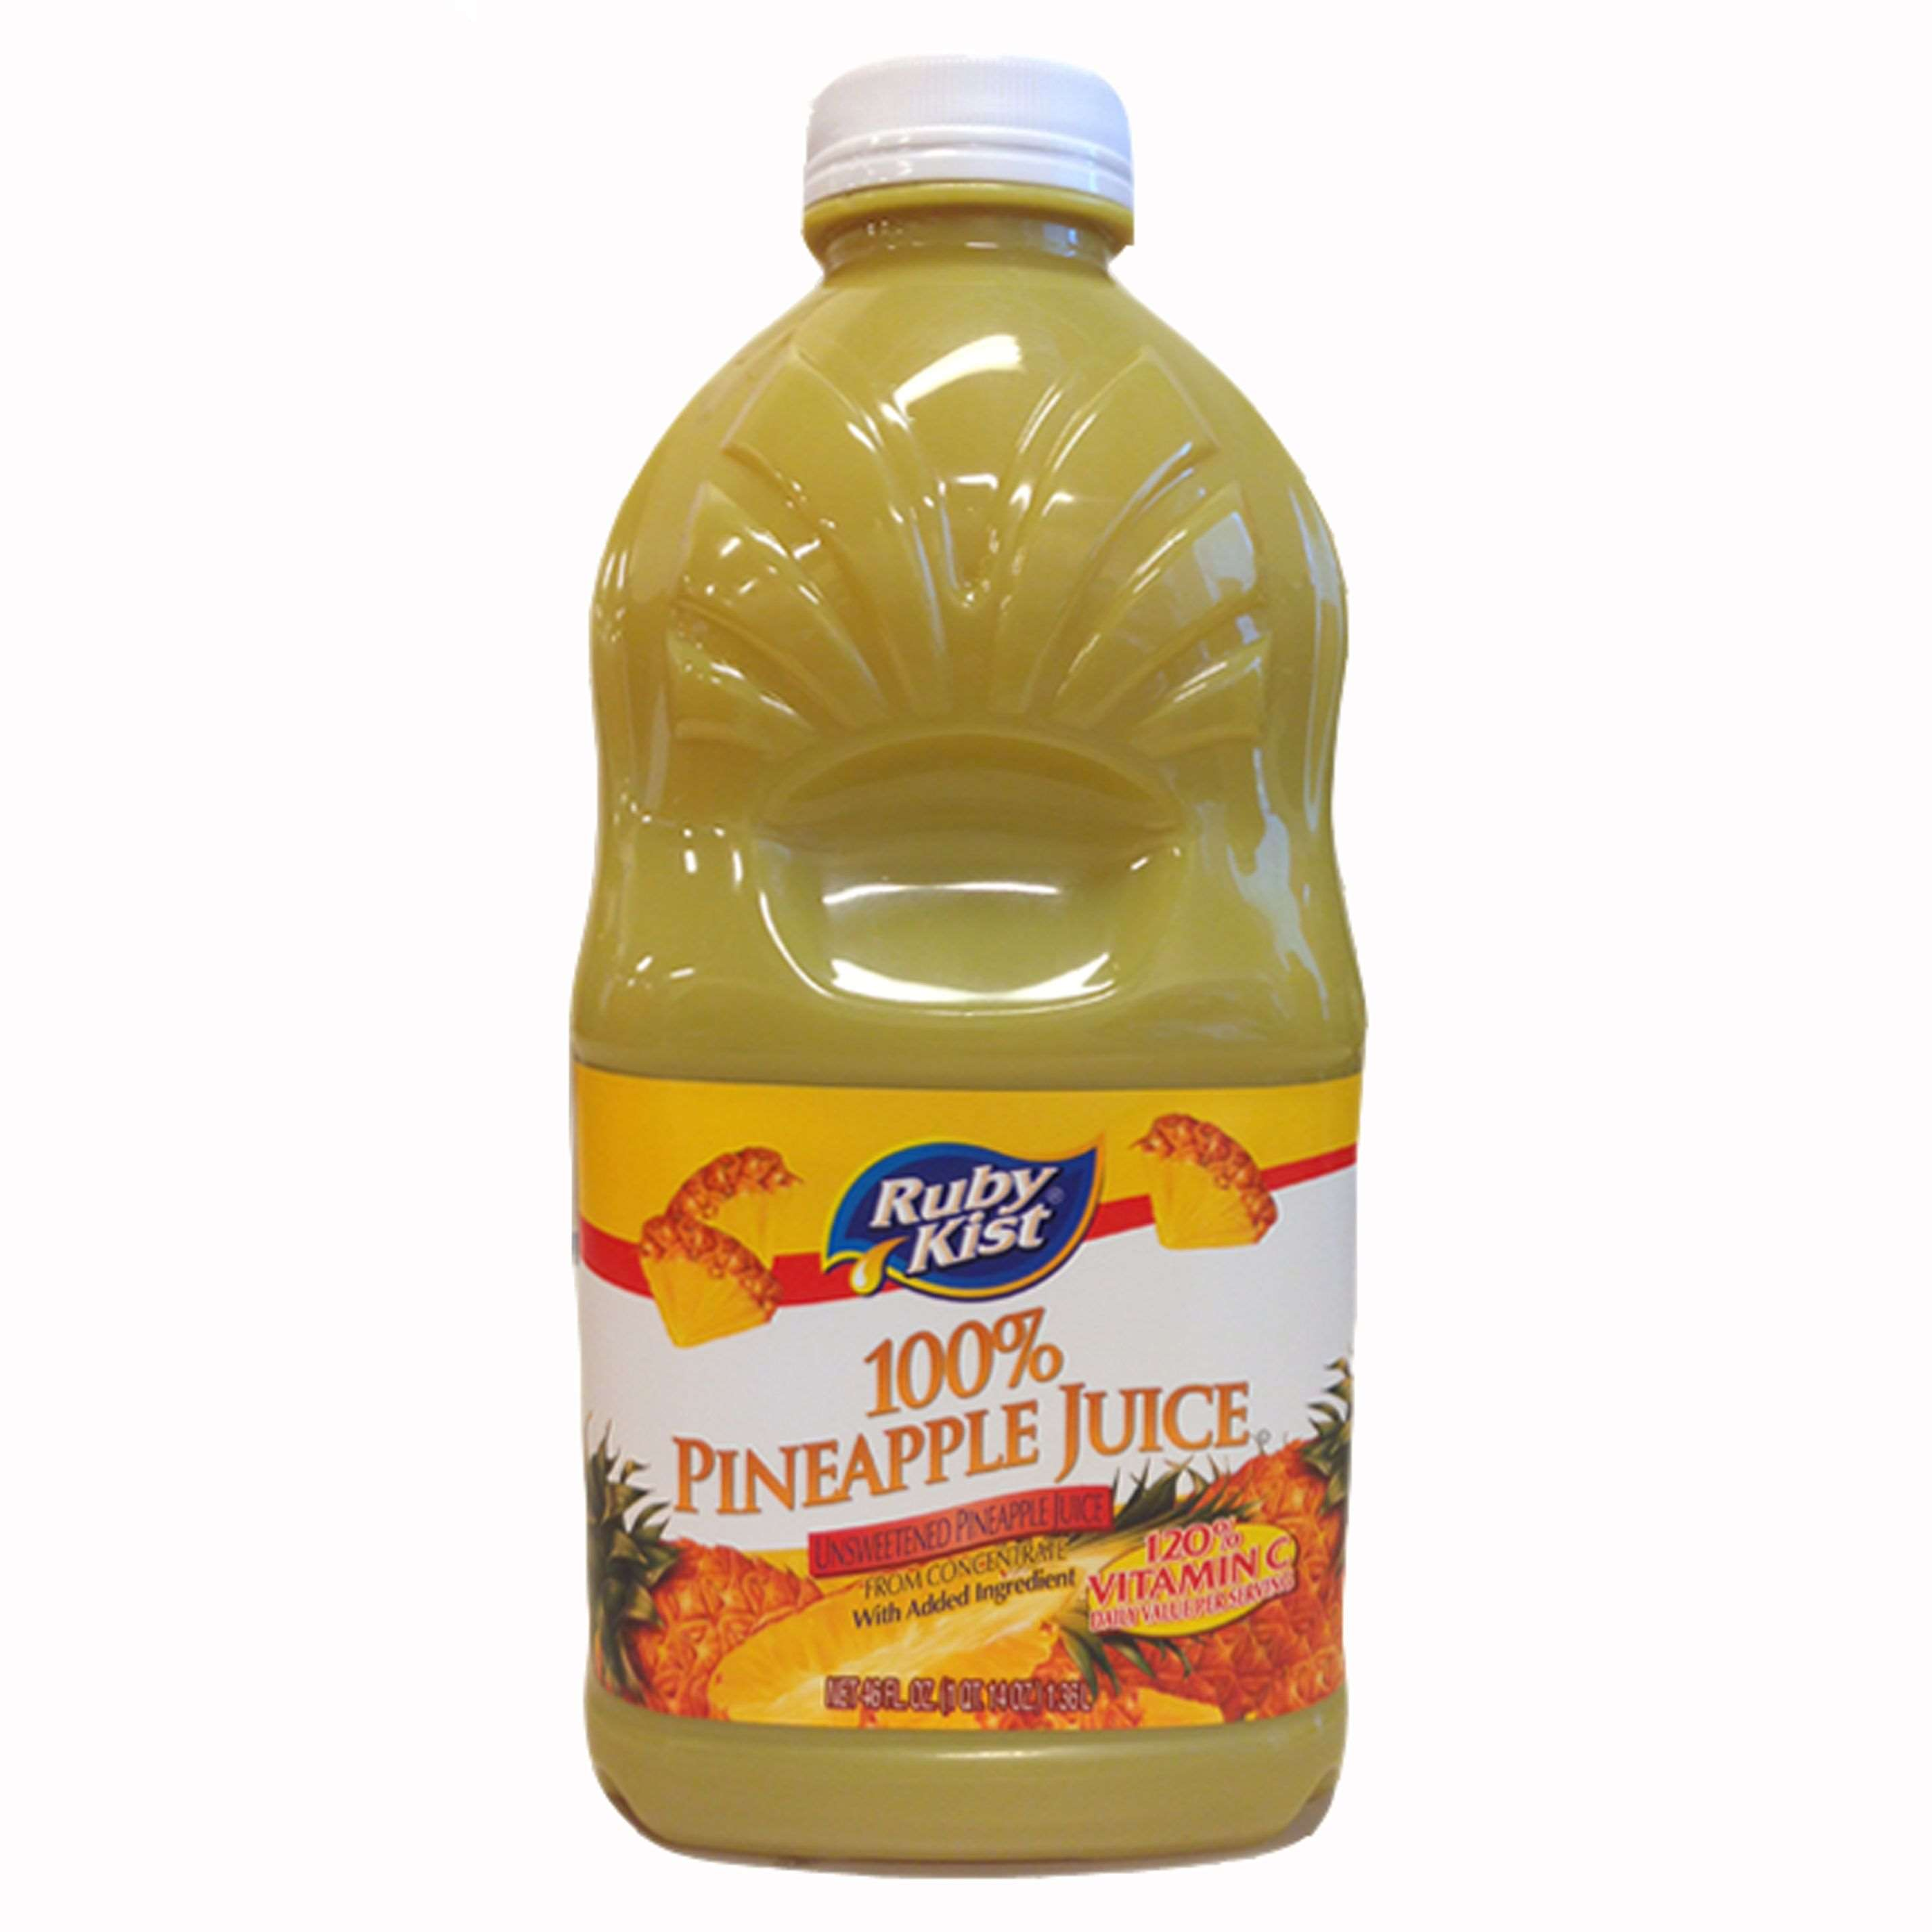 Ruby Kist Unsweetened Pineapple Juice Bottle 46 Ounces - 12 per case